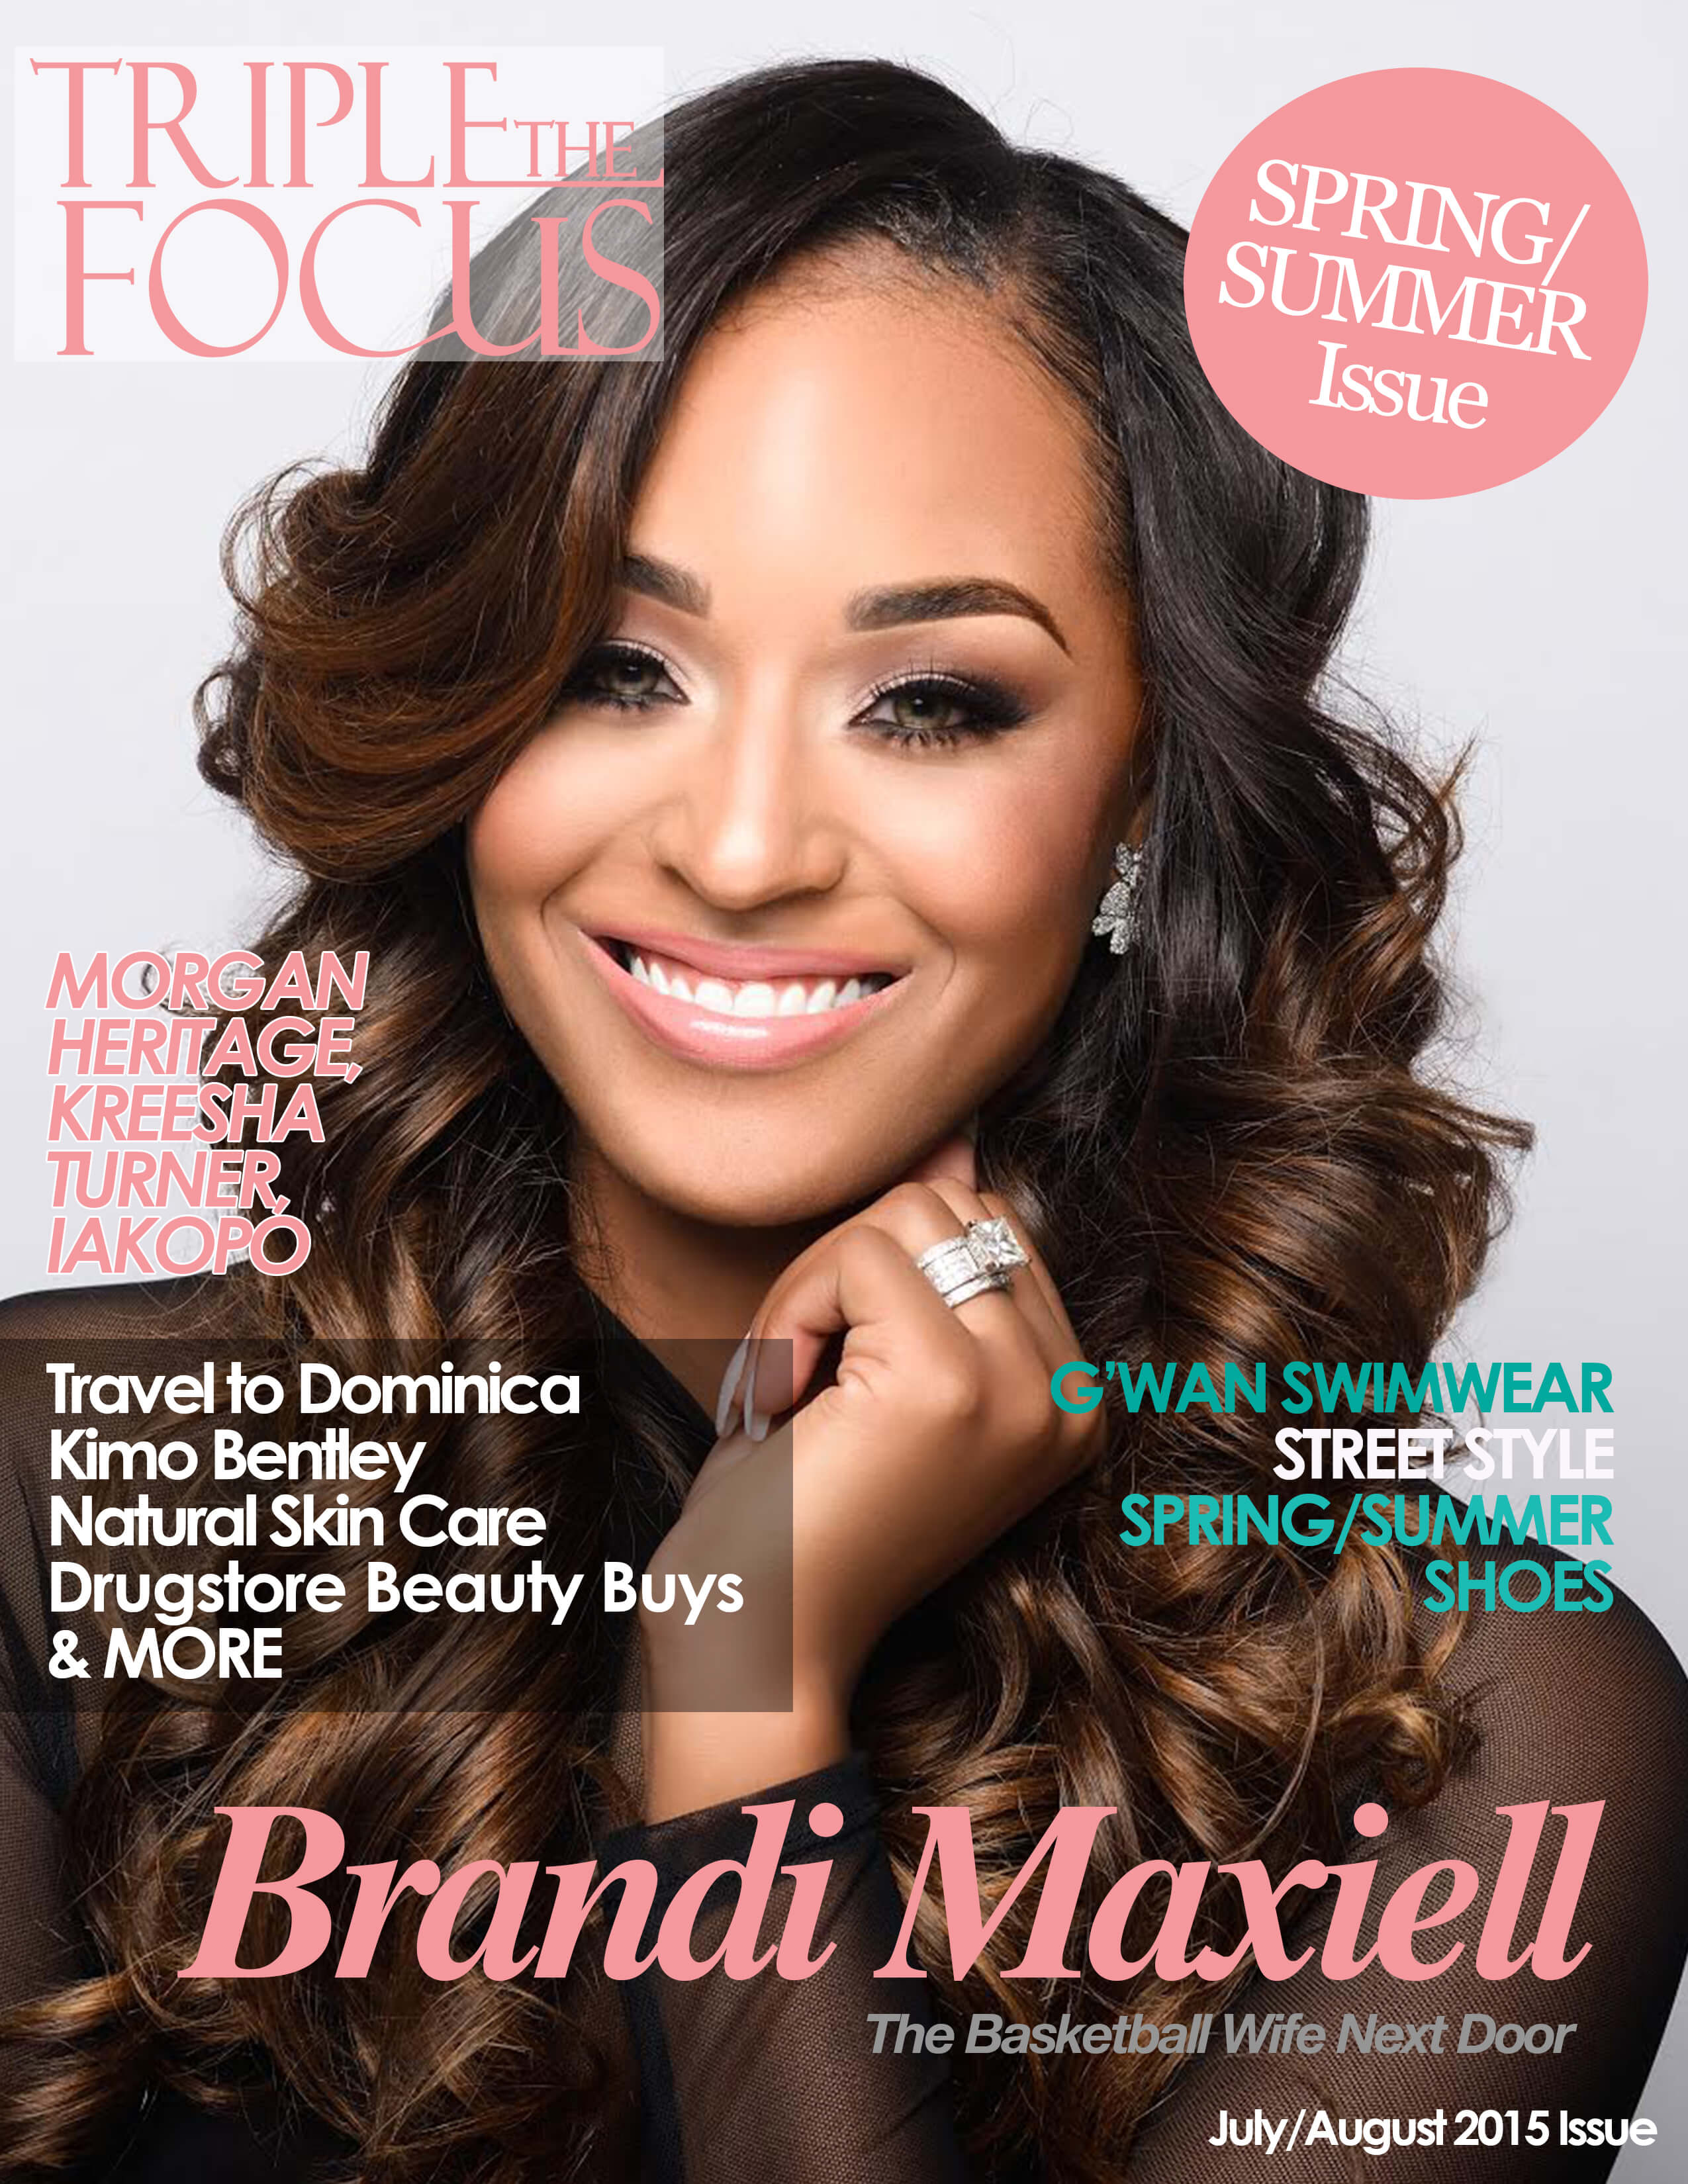 Triple the Focus with Brandi Maxiell - Style & Vibes